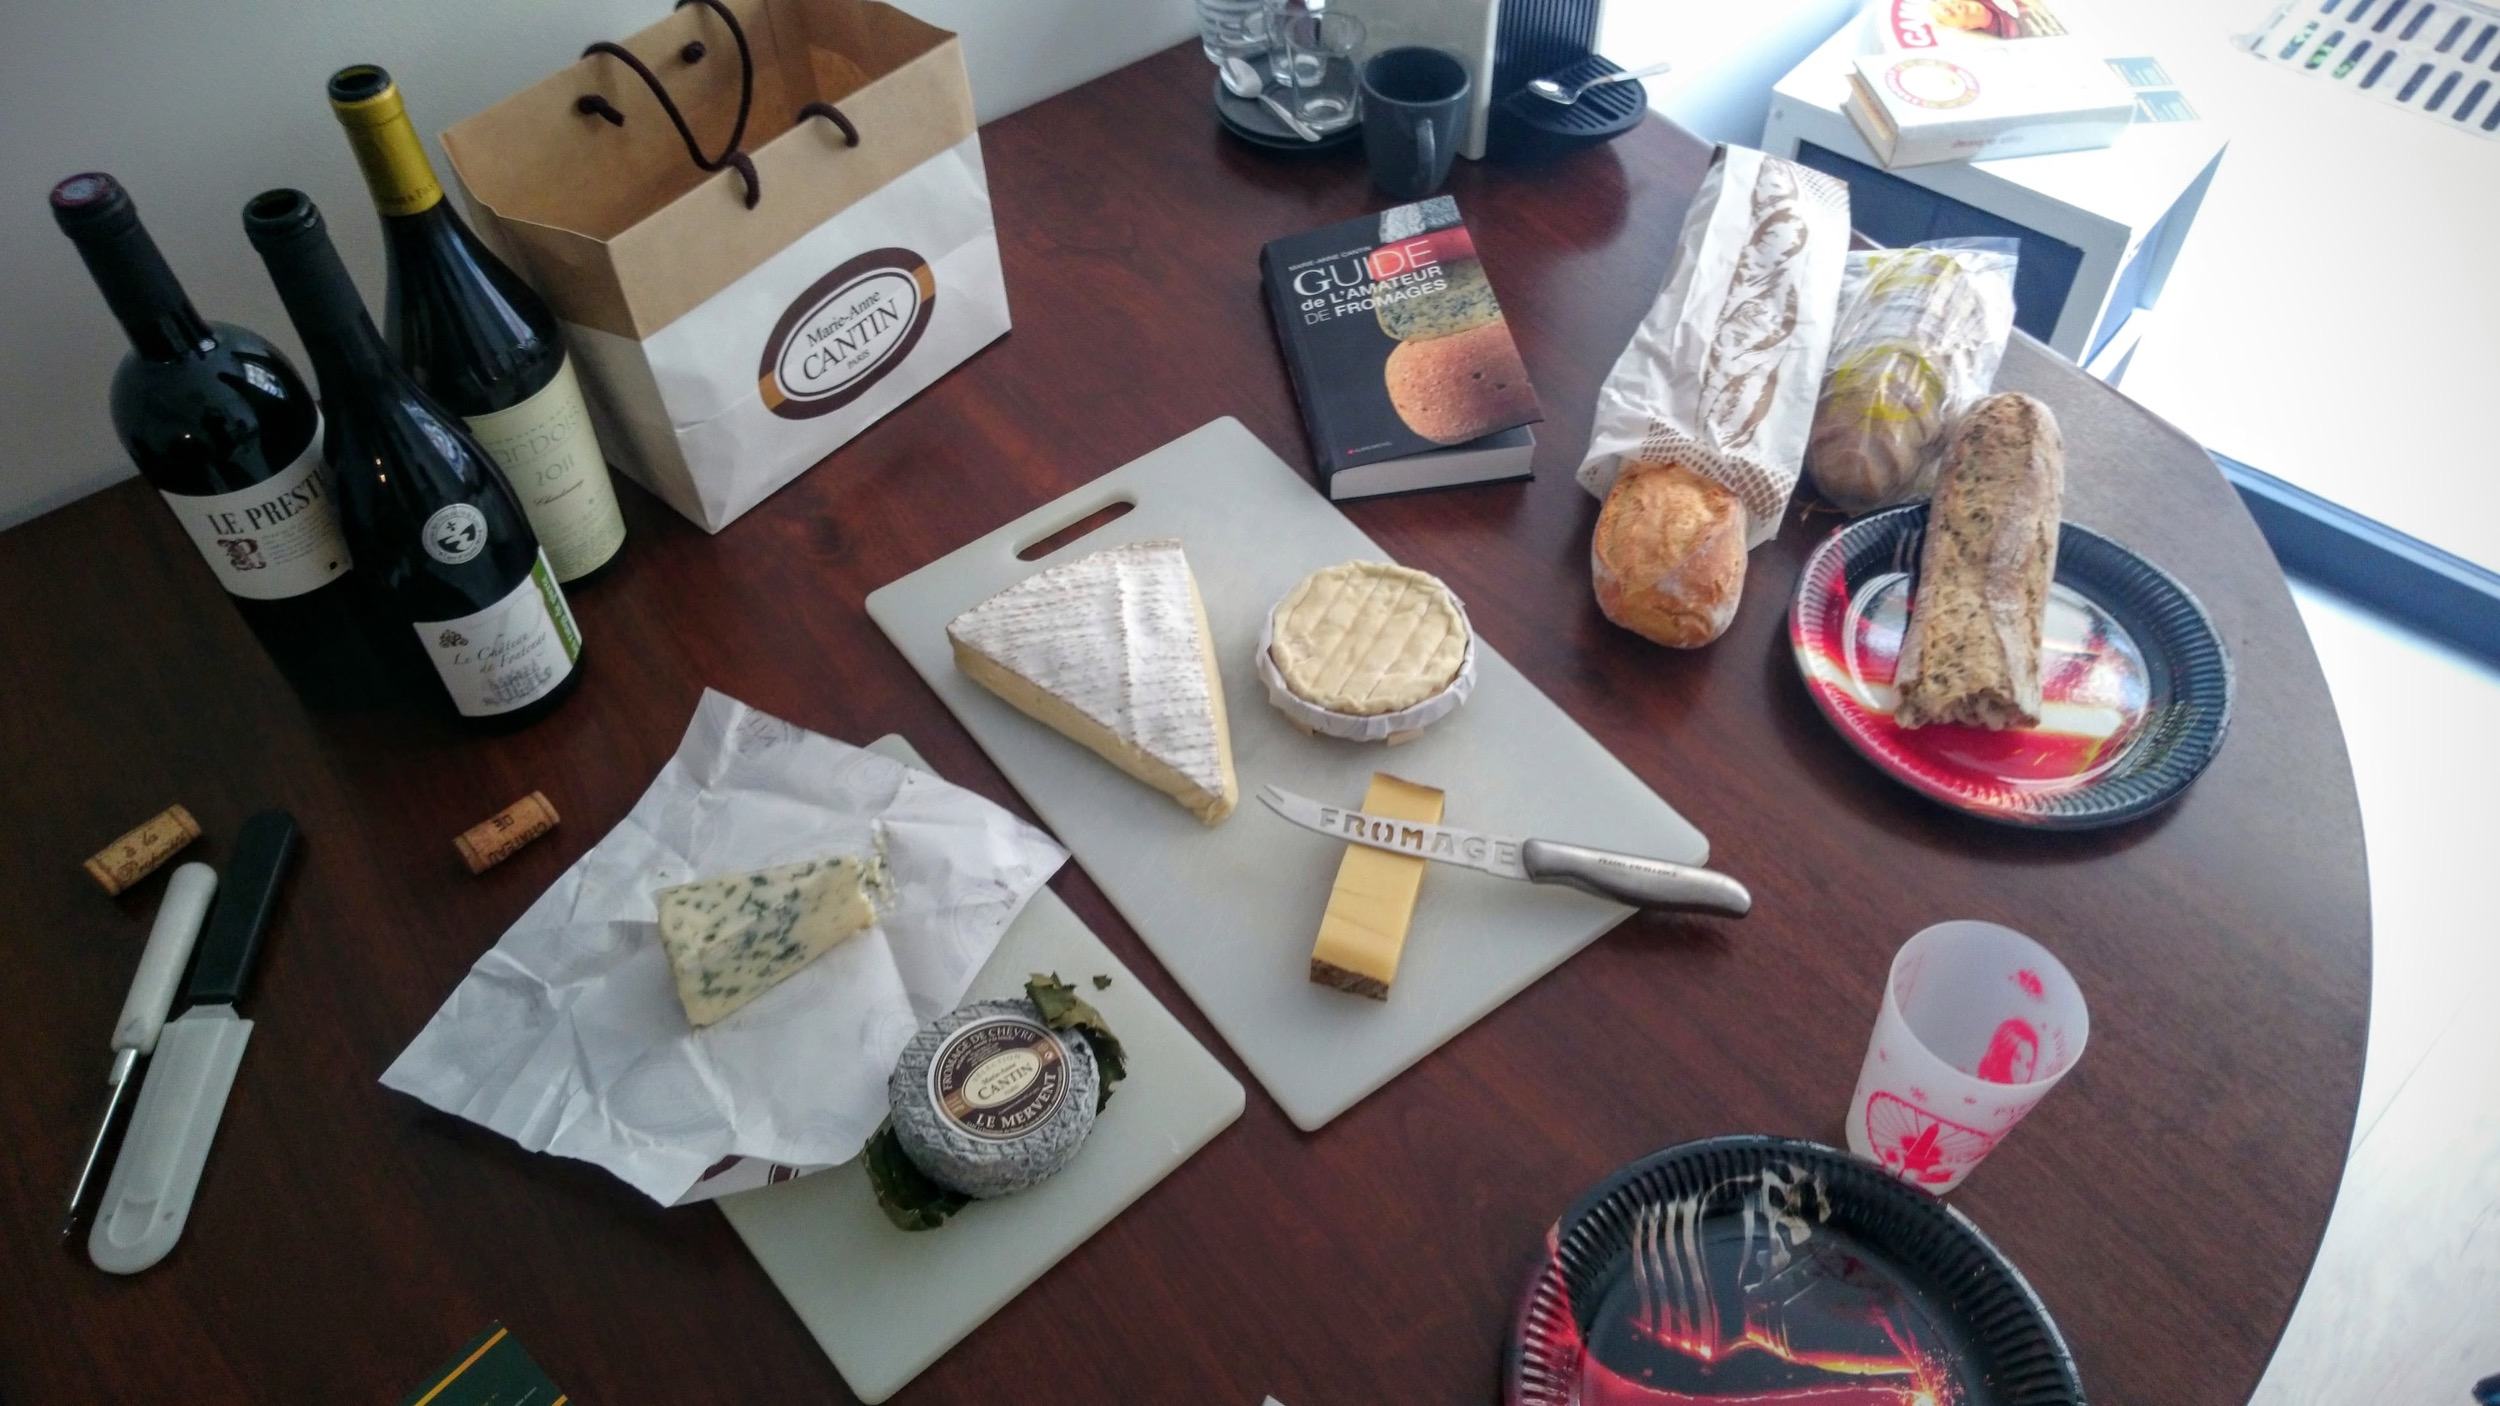 The spread as it looked at my office, with various wine and cheese pairings. The Star Wars plates add to the class! (It's all I had.)